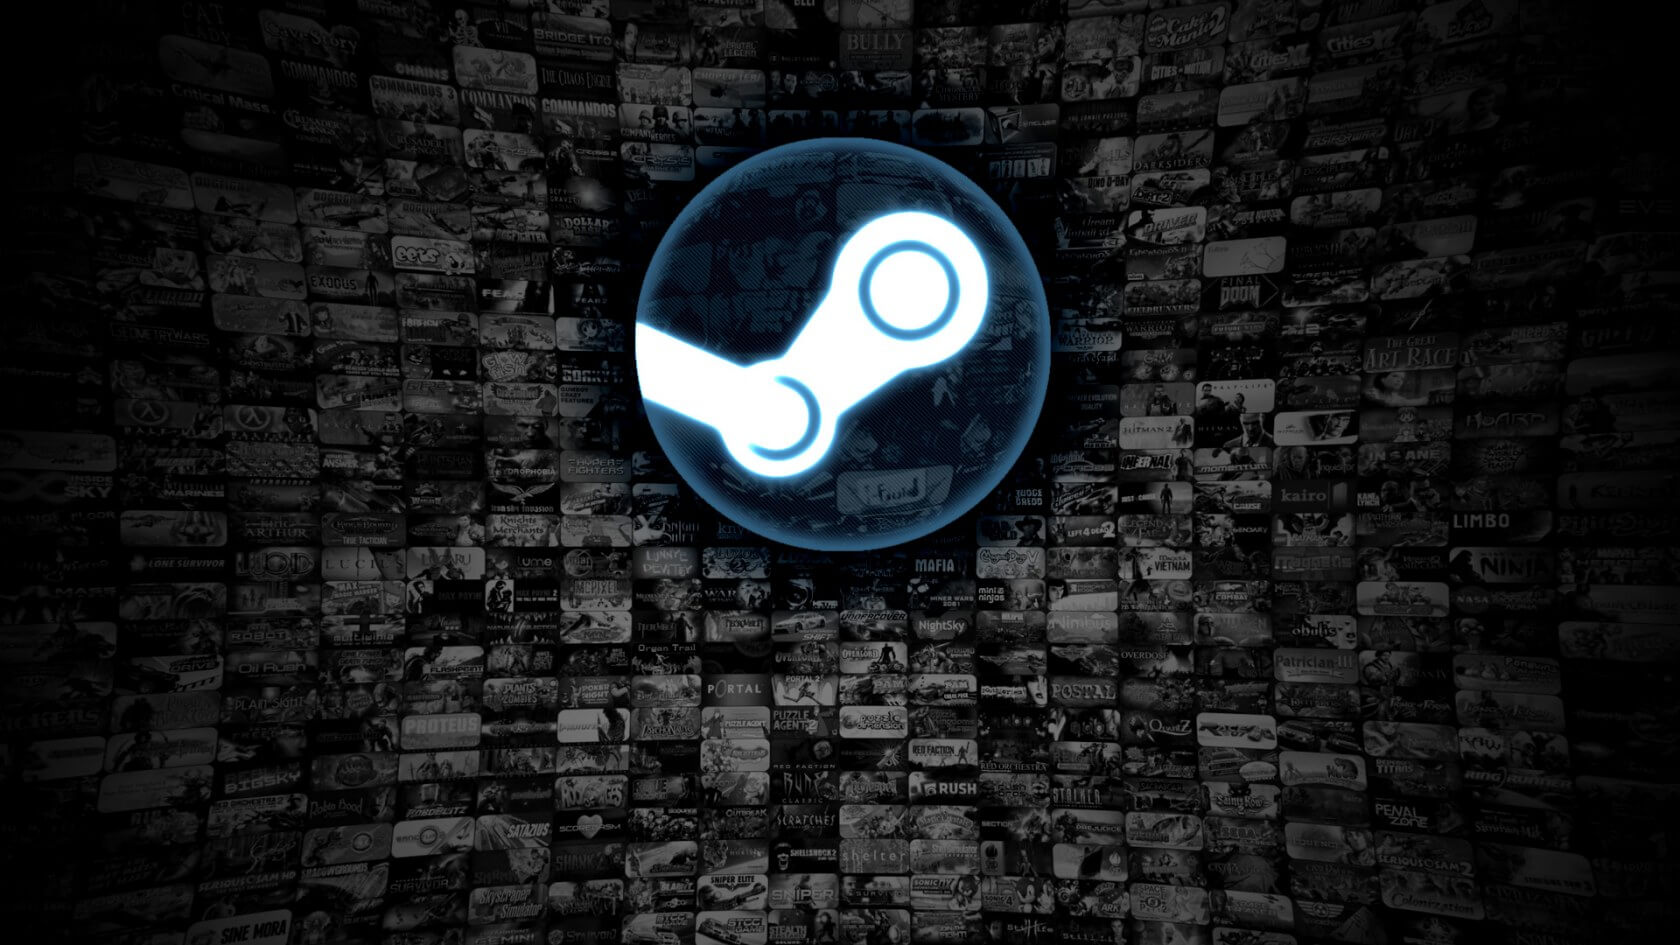 Steam surpasses 90 million users, 30,000 listed games